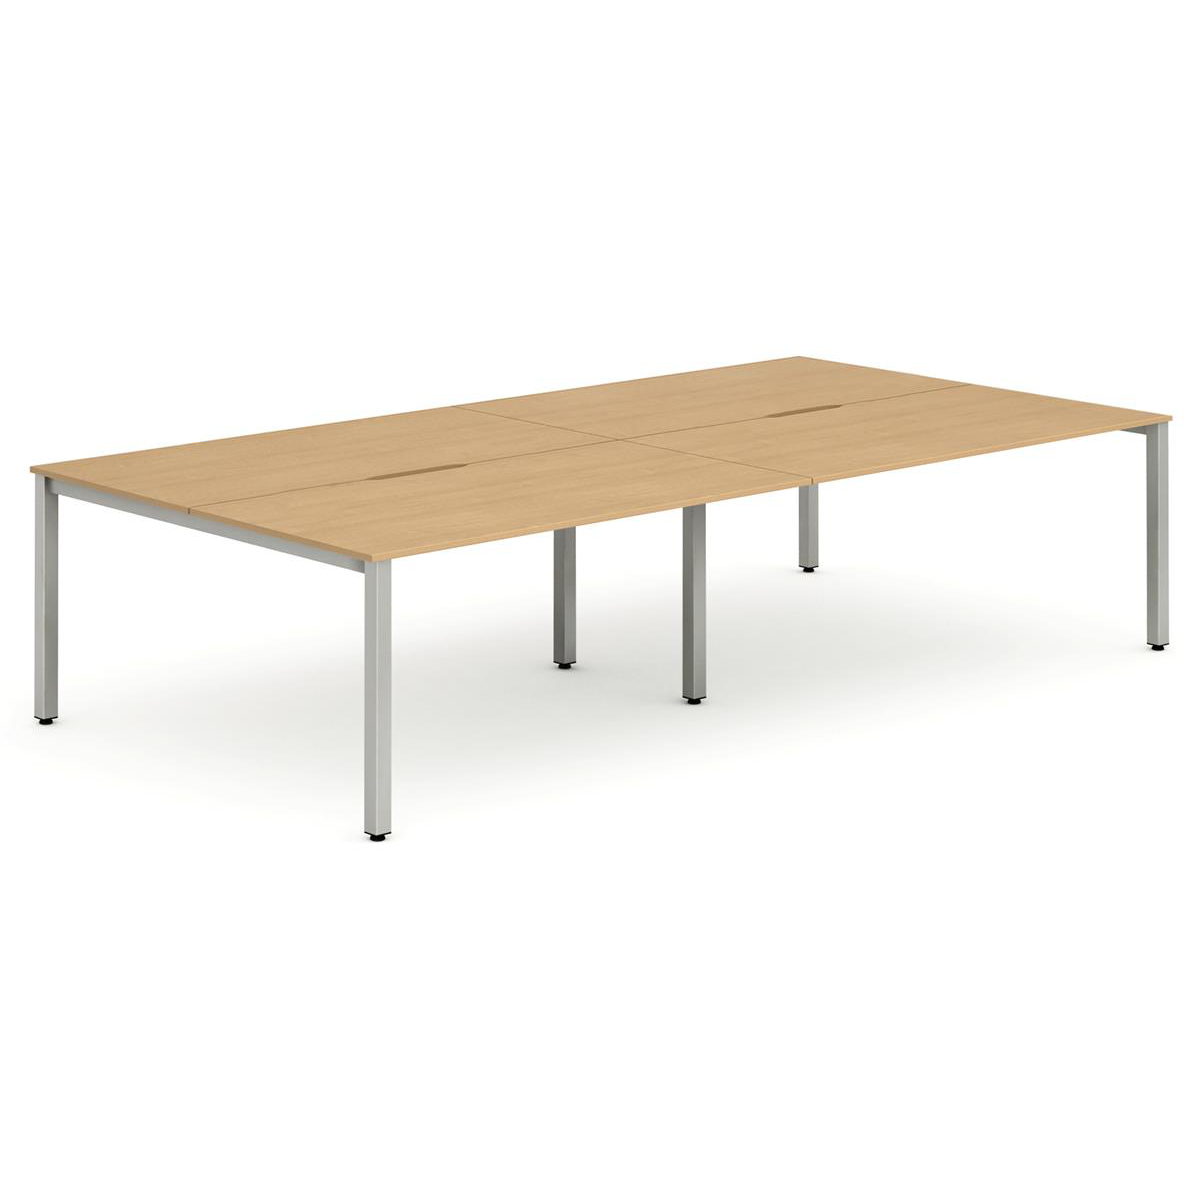 Trexus Bench Desk 4 Person Back to Back Configuration Silver Leg 2800x1600mm Beech Ref BE257